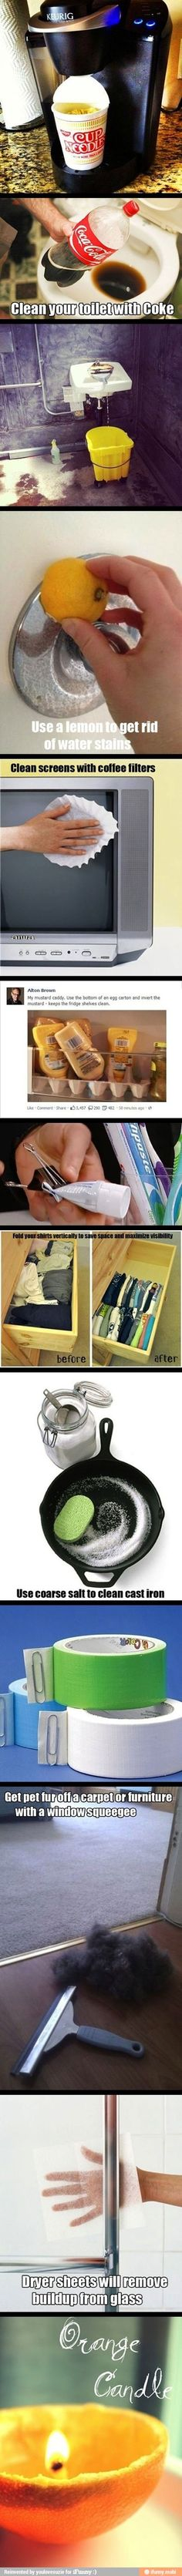 useful life hacks